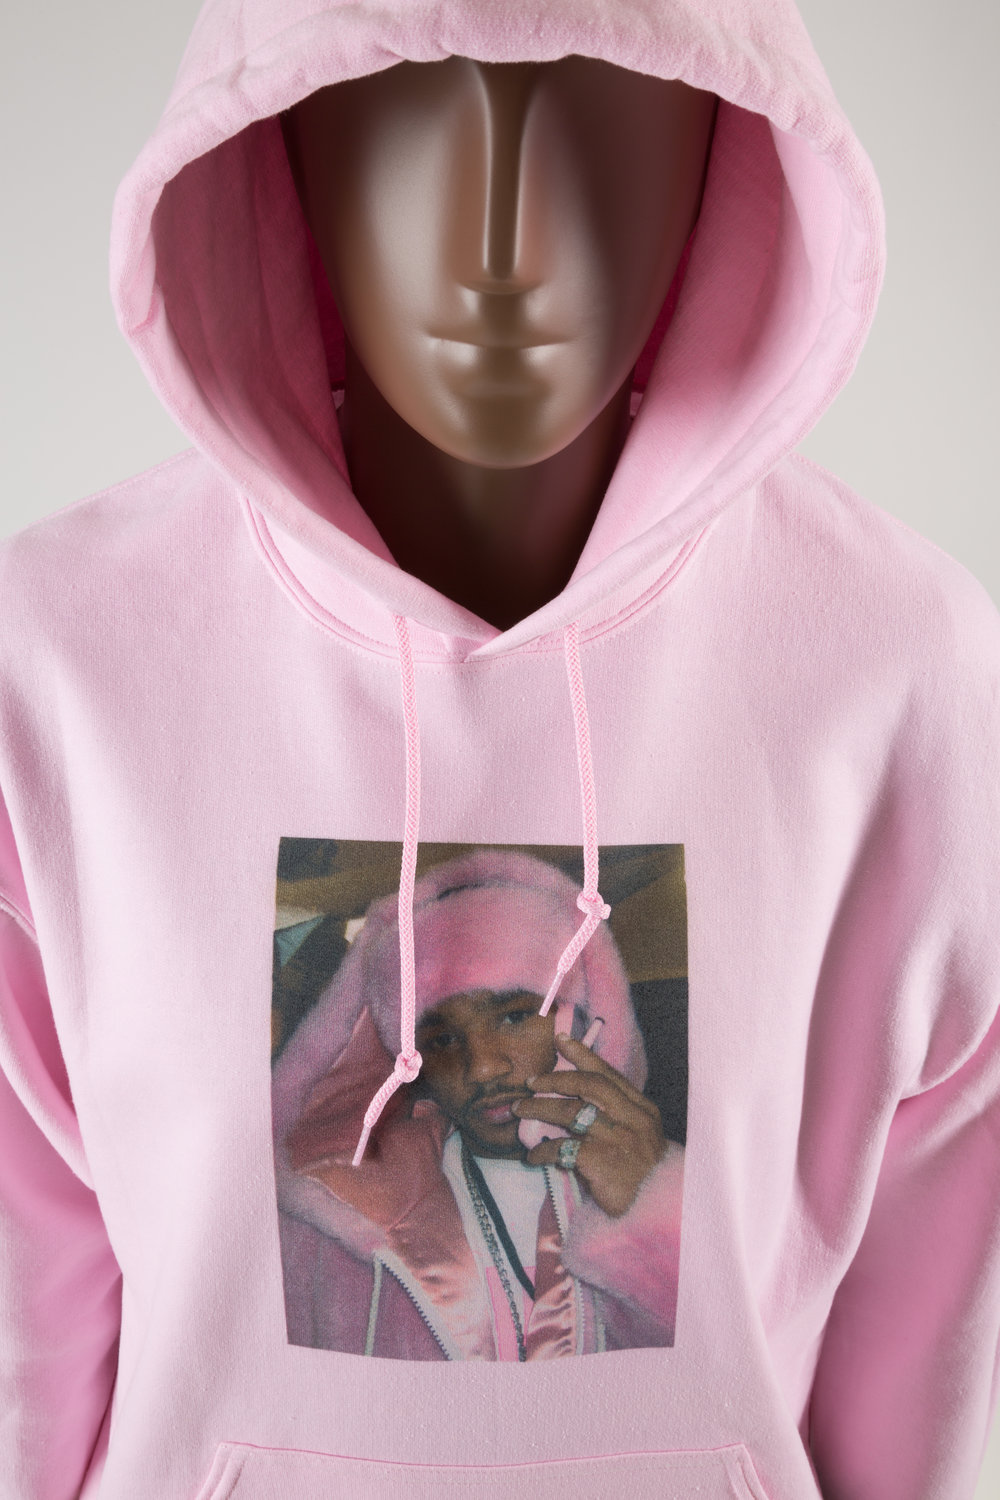 Sweatshirt, featuring photo of Cam'ron wearing pink fur, circa 2003, anonymous donor. All photographs © The Museum at FIT